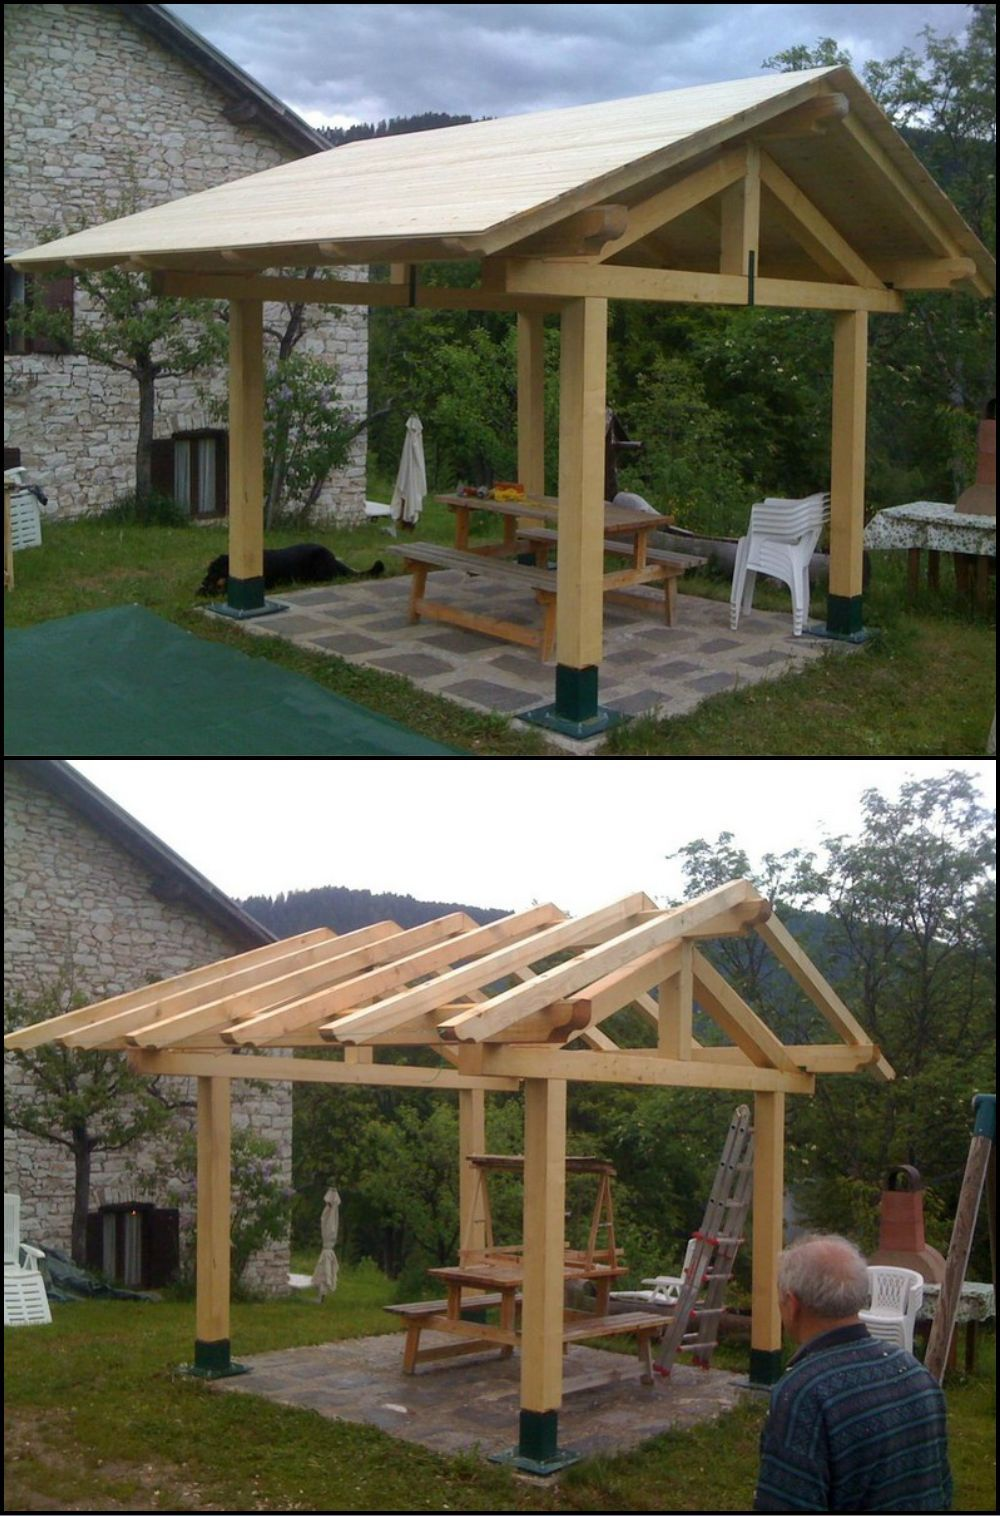 How To Build A Gazebo | Outdoor Living | Pinterest | Cheminée ...